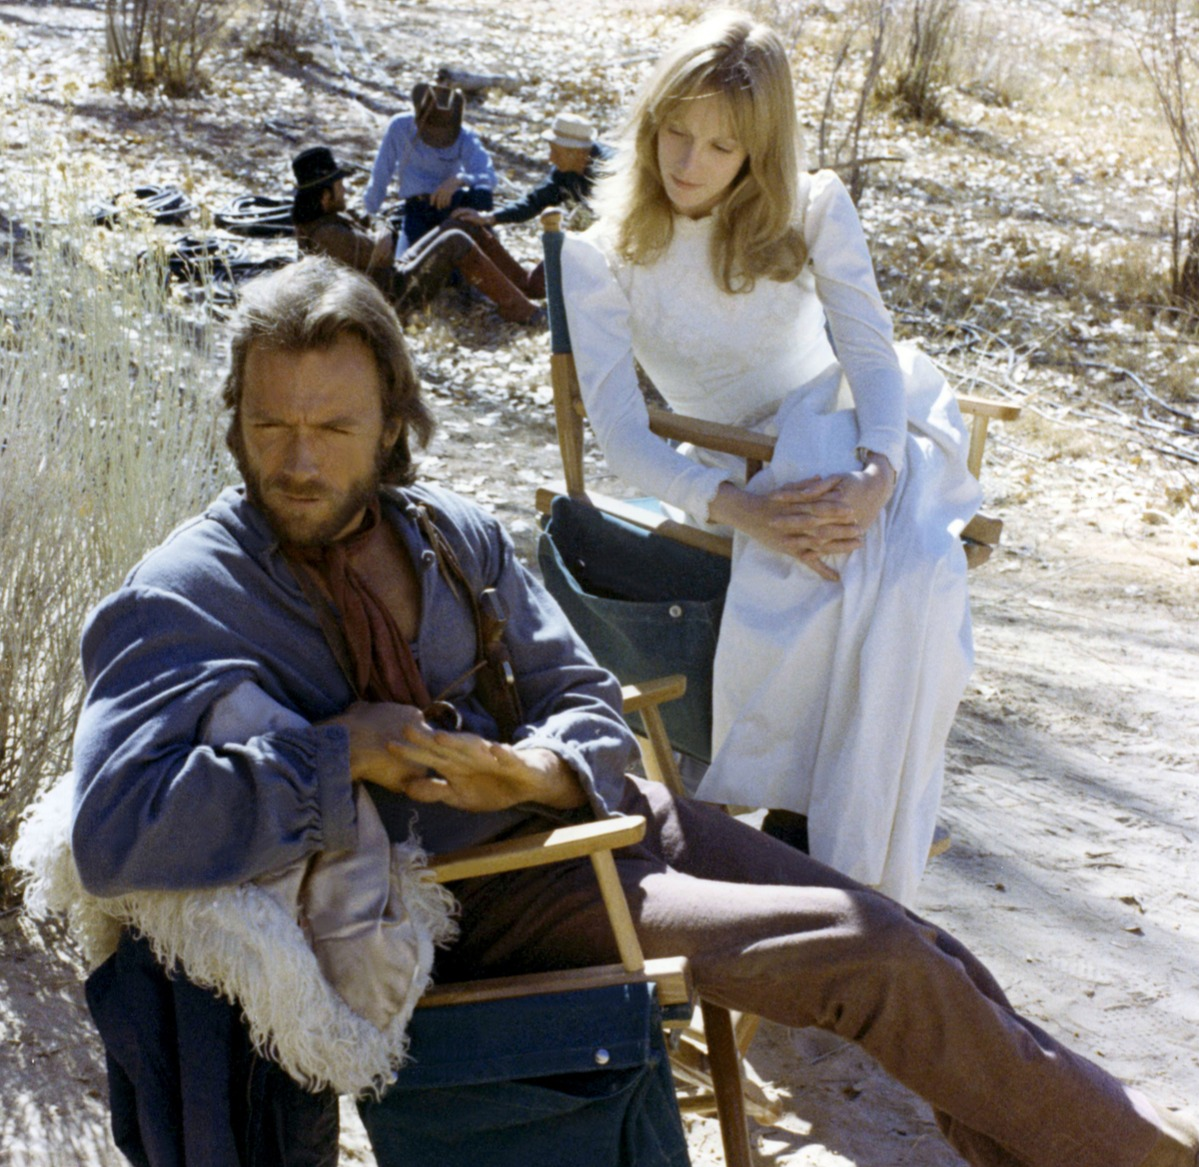 American actress Sondra Locke with actor and director Clint Eastwood on the set of his movie The Outlaw Josey Wales